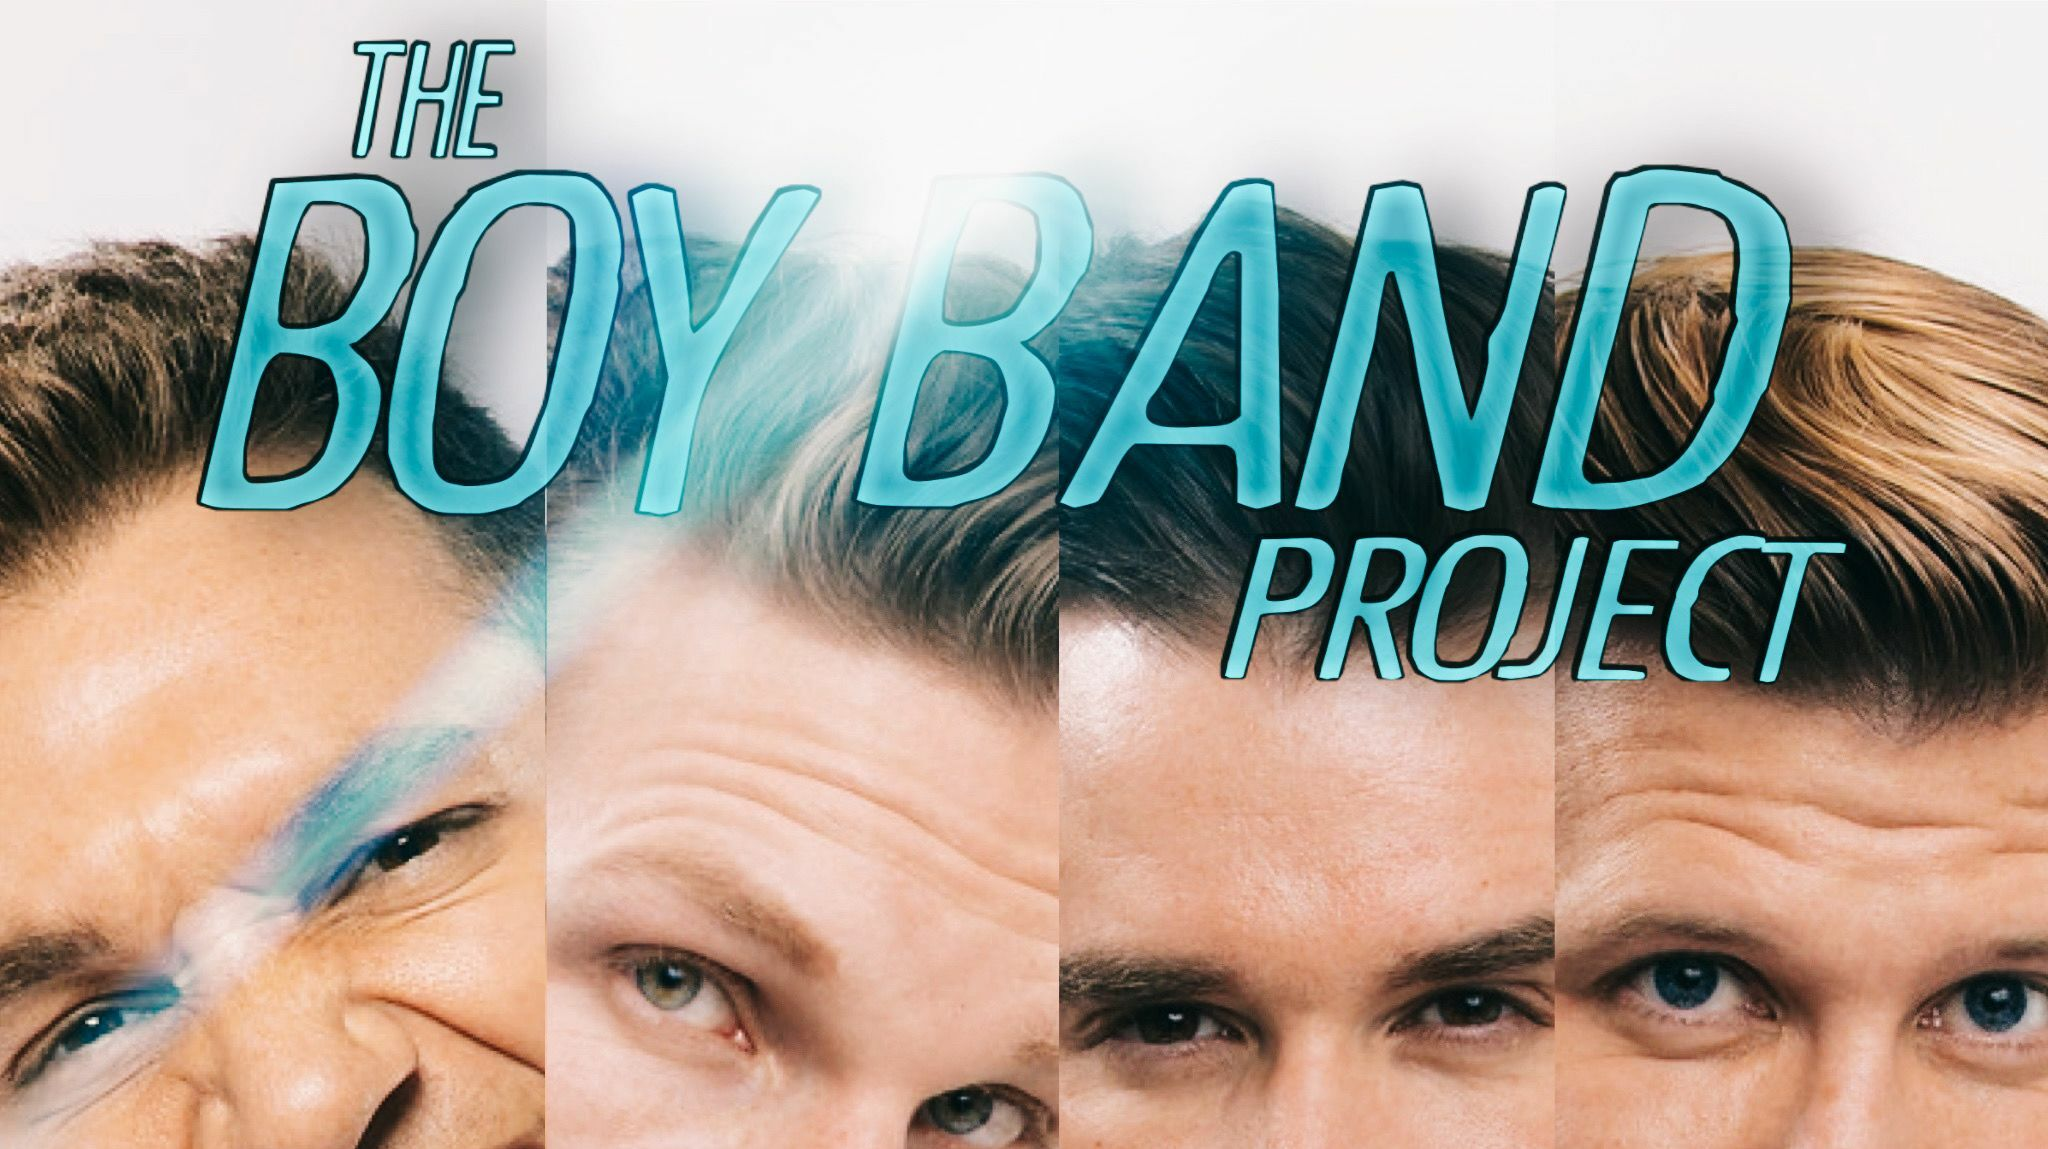 The Boy Band Project: The Ultimate Contemporary Boy Band Experience